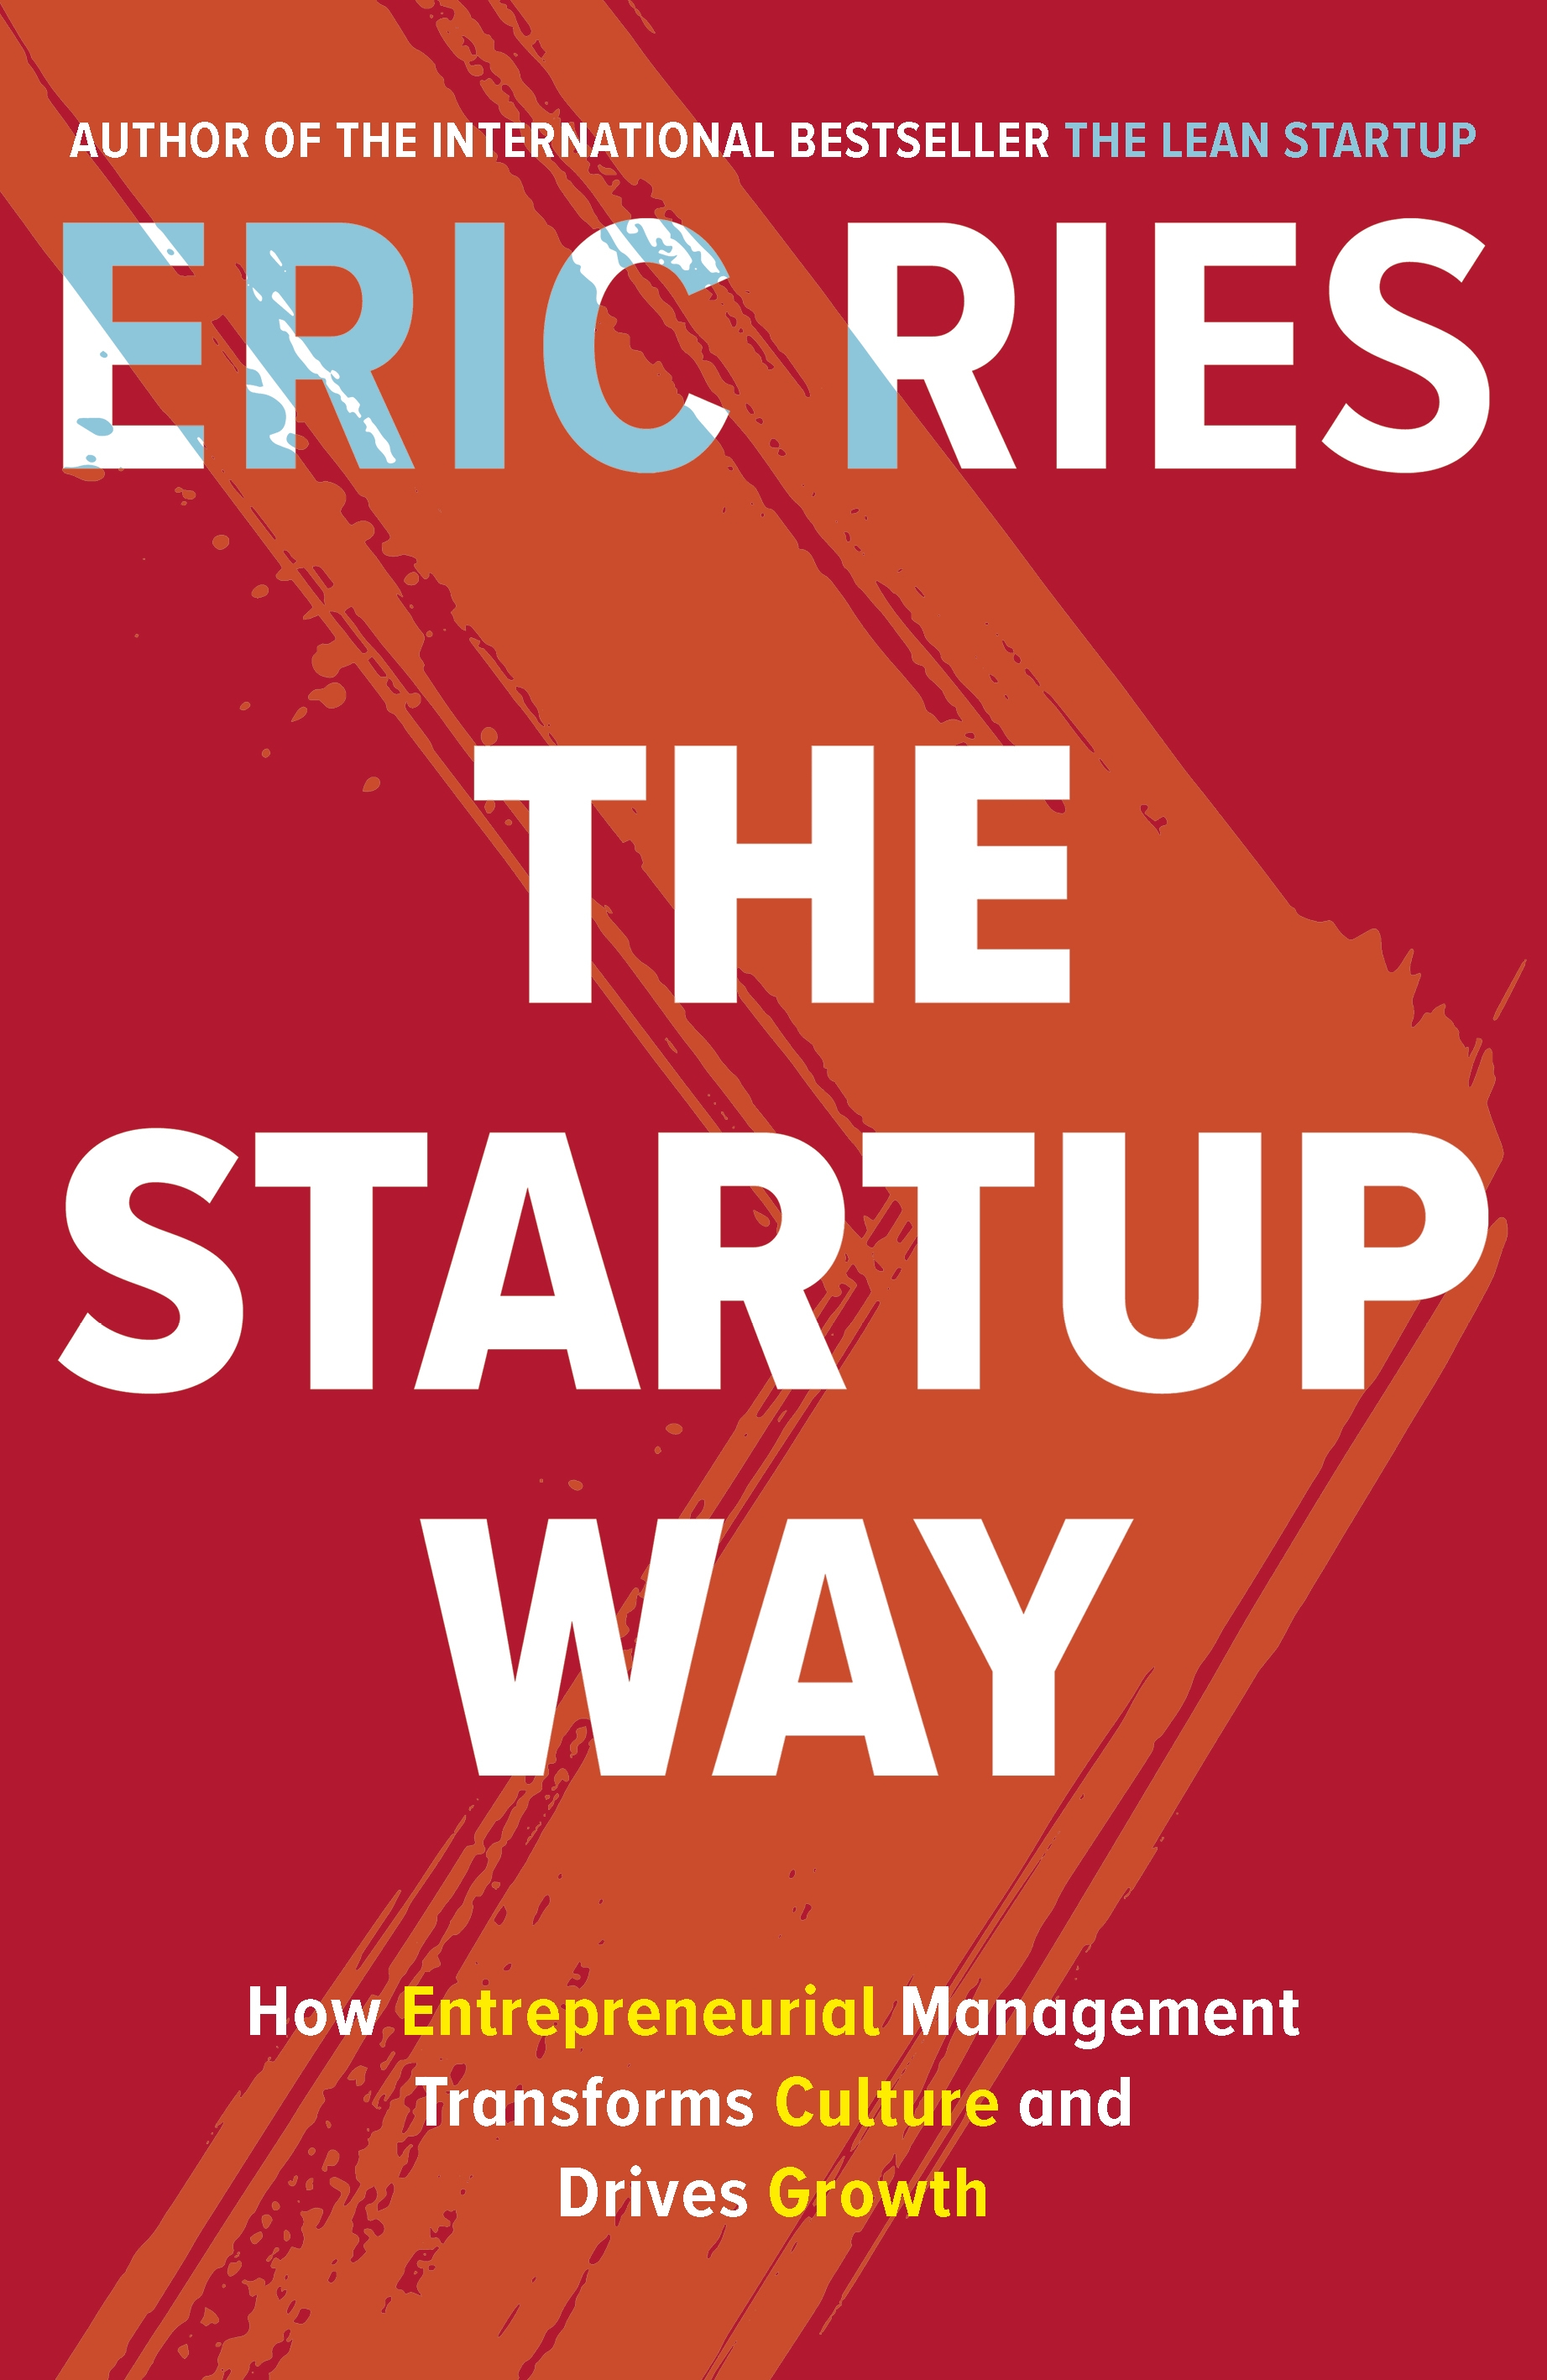 THE START UP WAY BOOK COVER